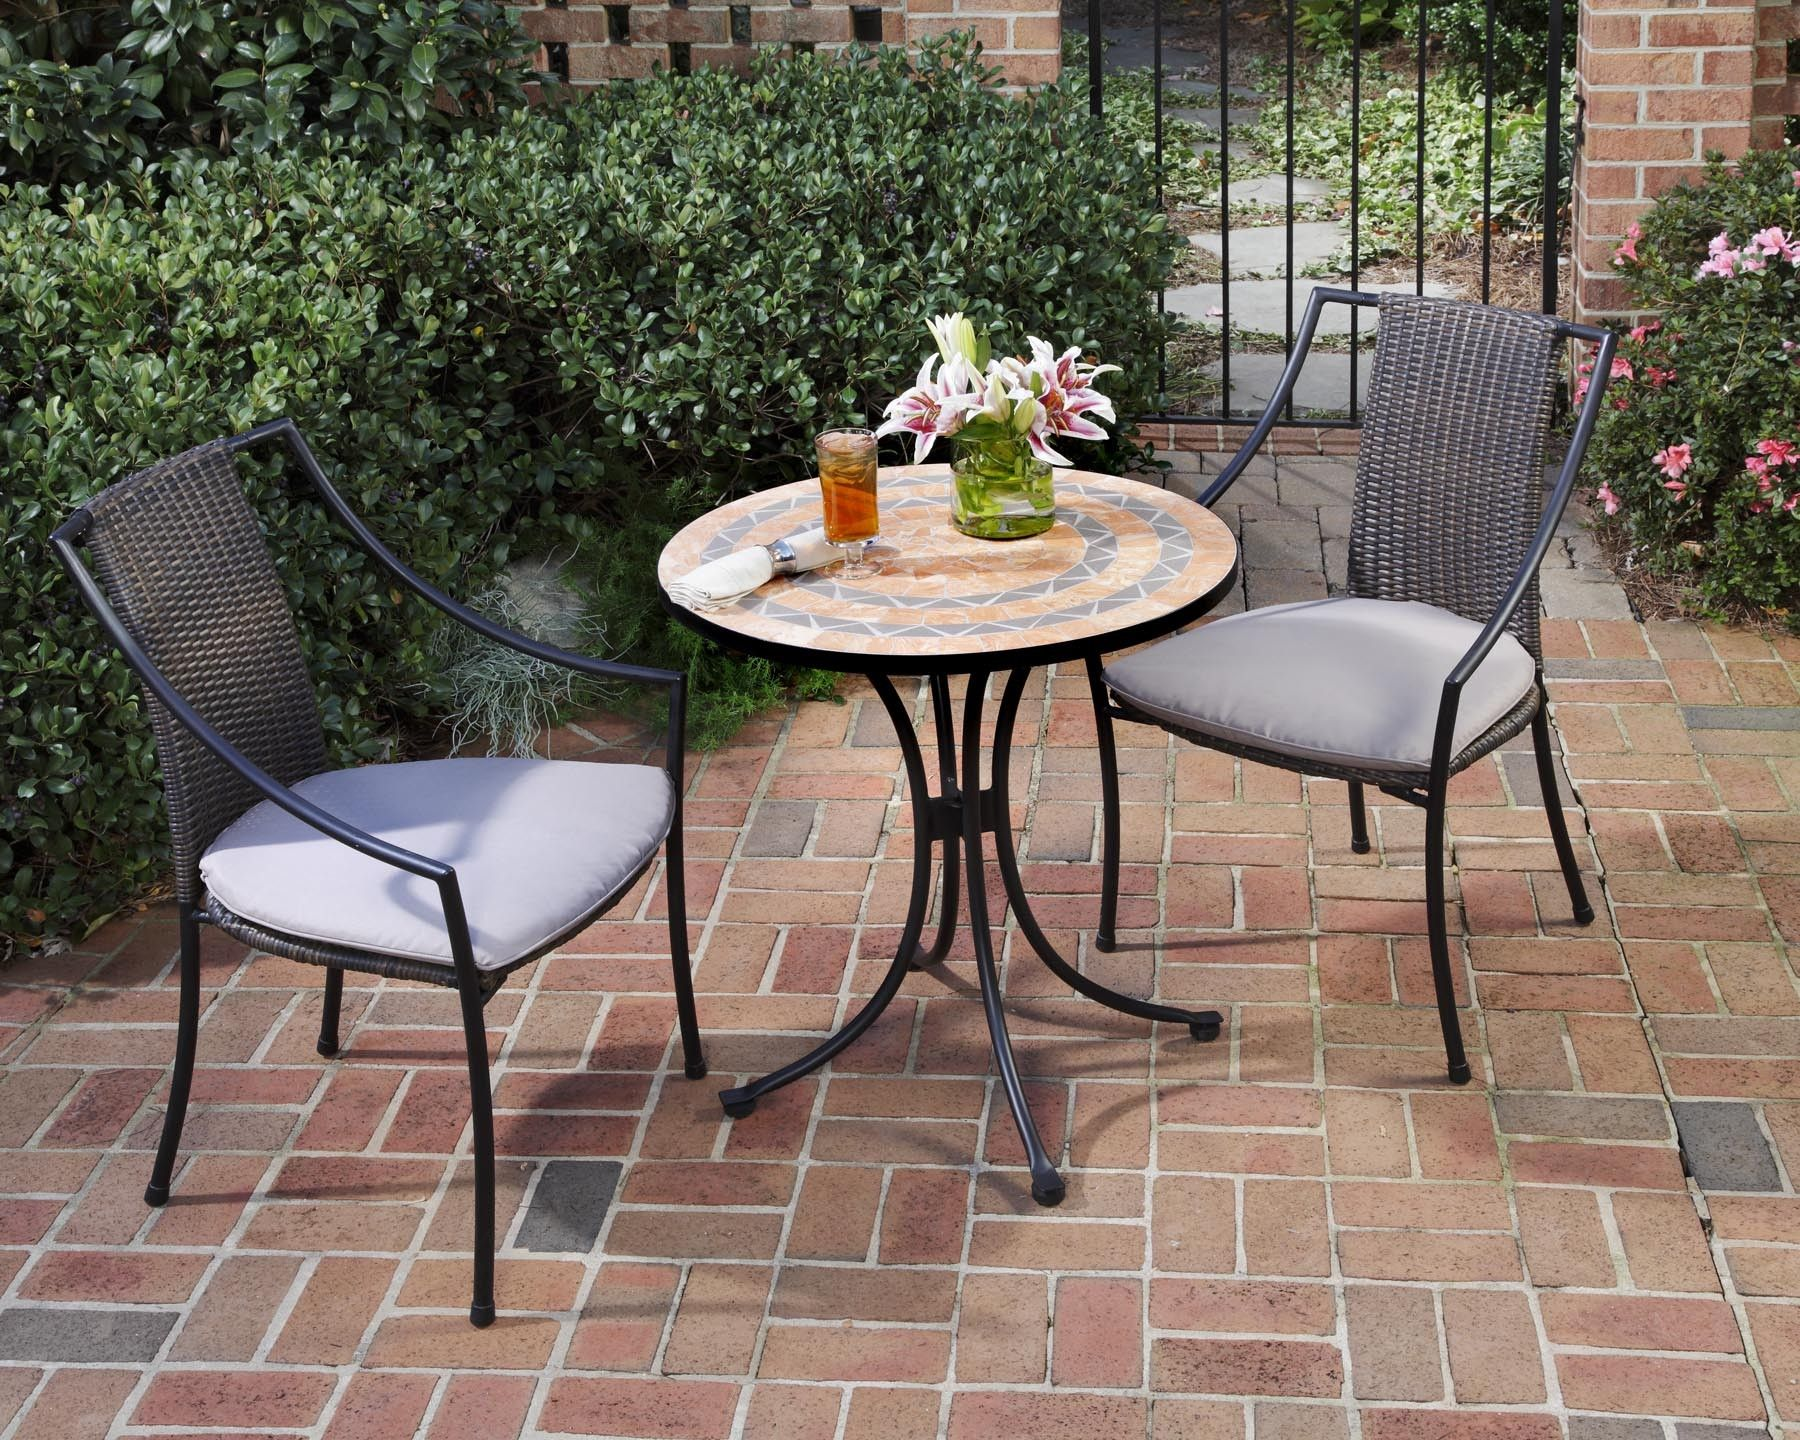 clearance lowes table sets outdoor bistro for full dining sale bar height home of top chairs furniture patio set size and bars depot high